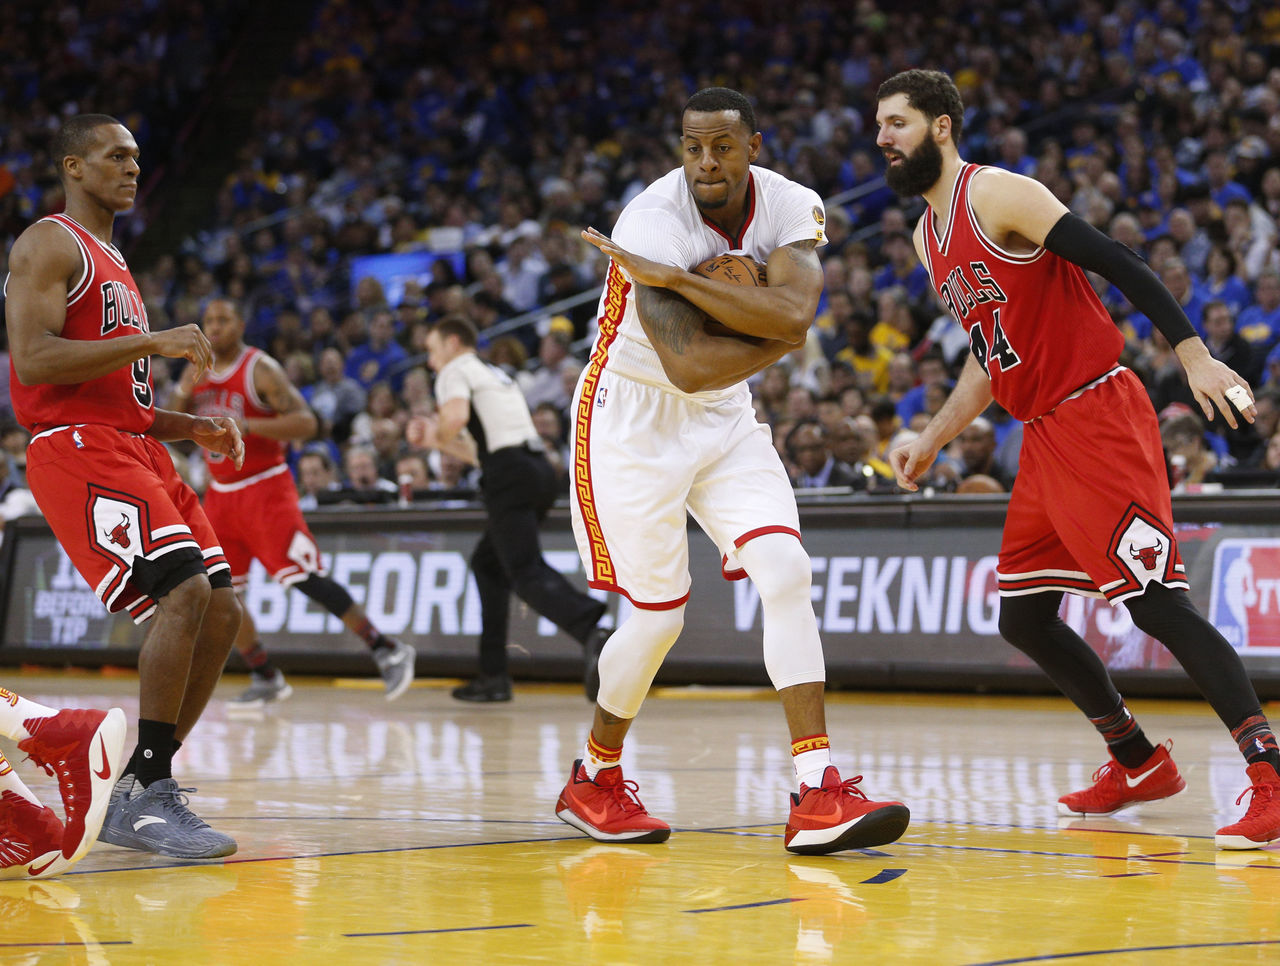 Cropped 2017 02 09t063358z 490883597 nocid rtrmadp 3 nba chicago bulls at golden state warriors